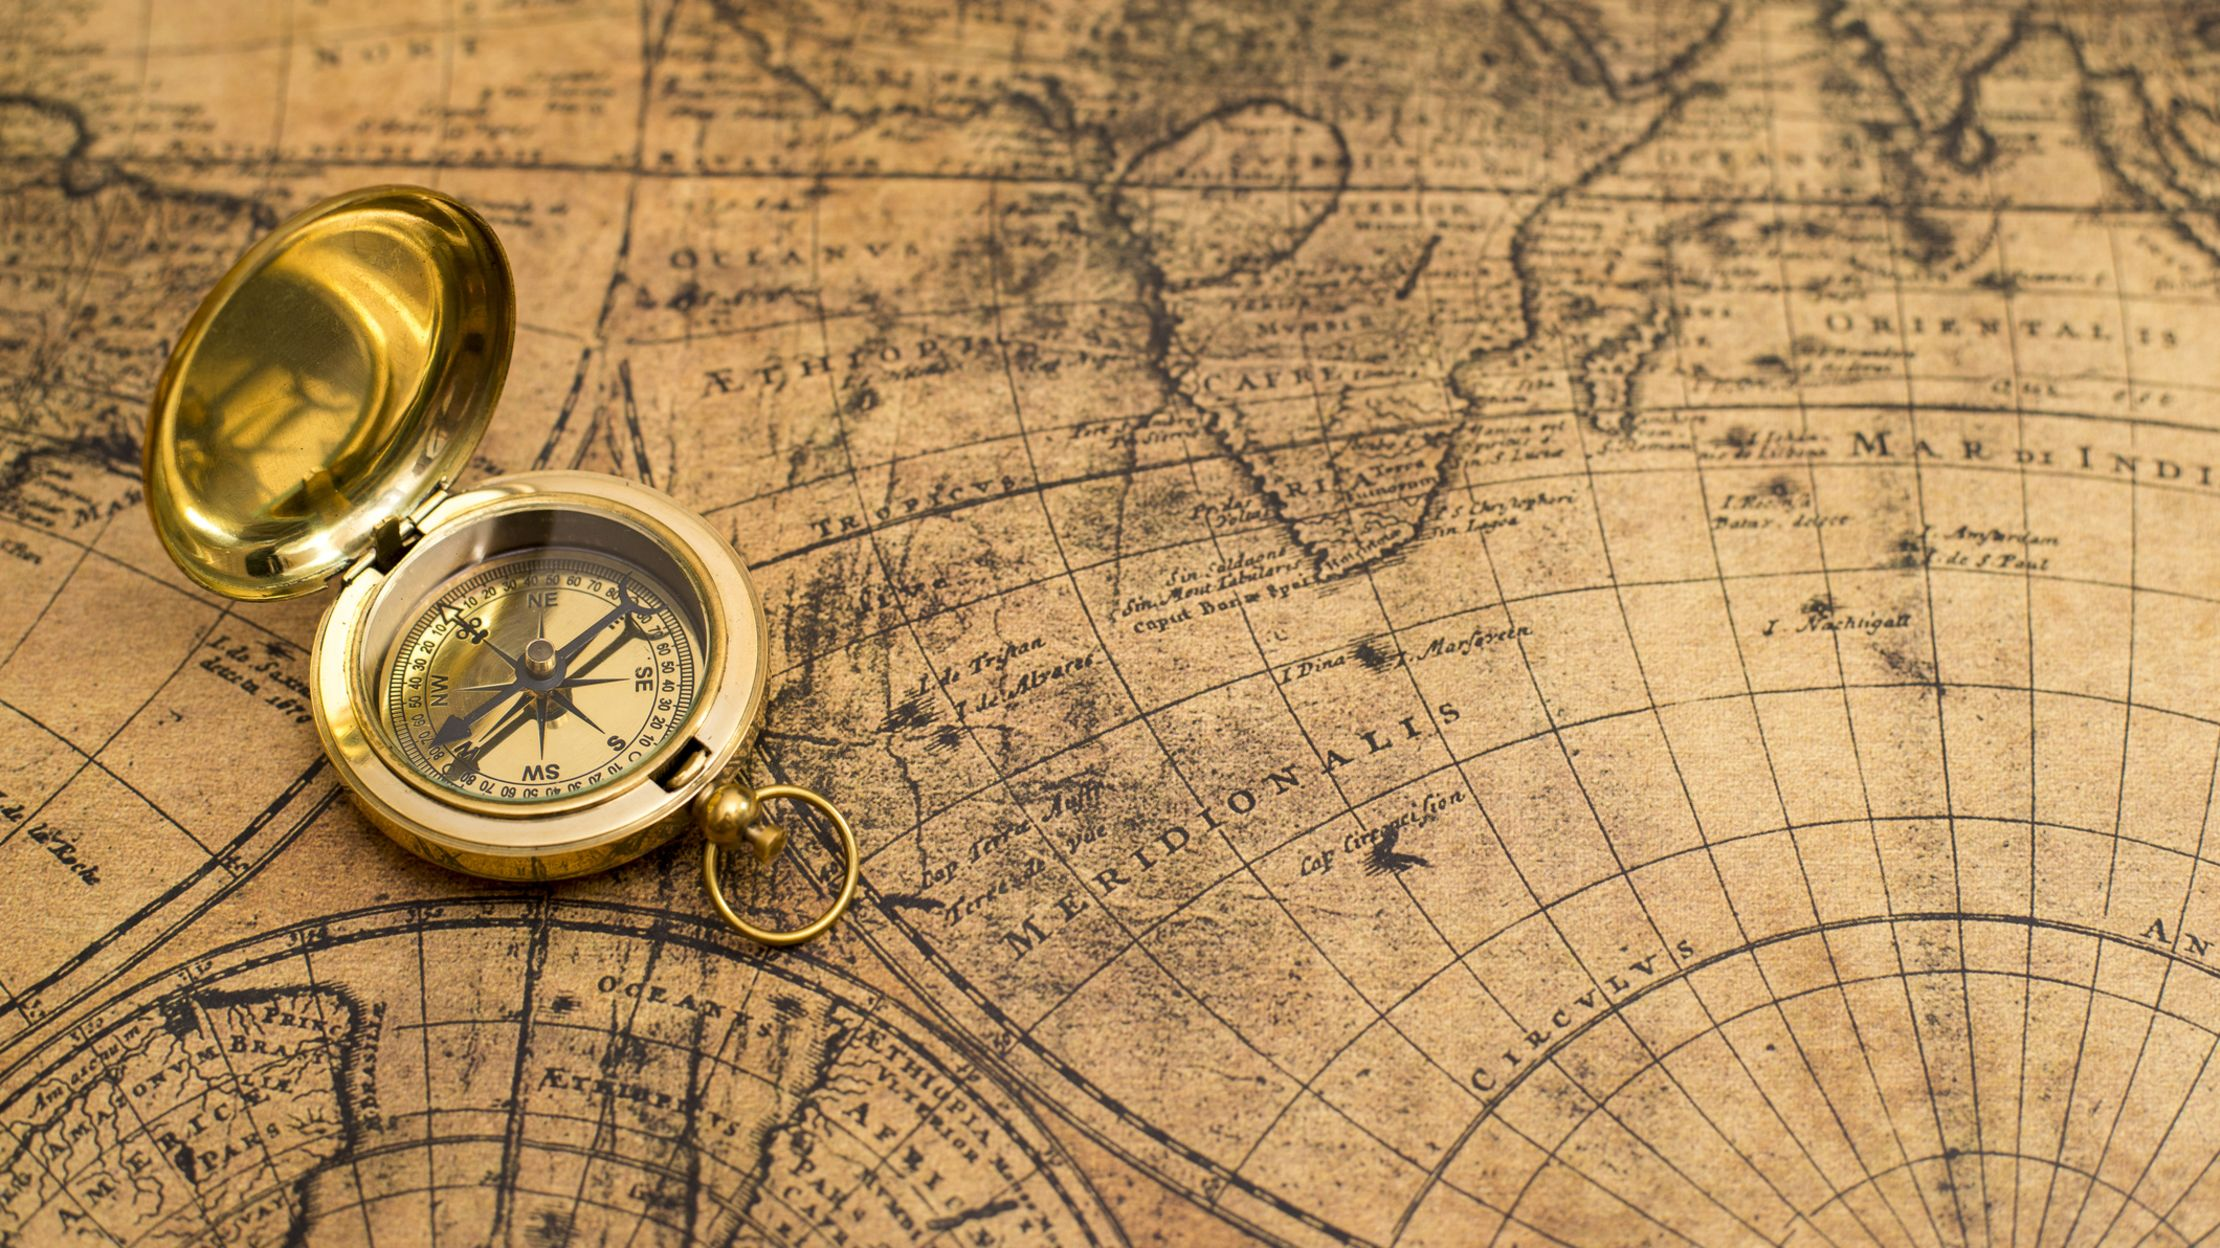 5 Surprising Ways The Age Of Exploration Shaped Modern Civilization